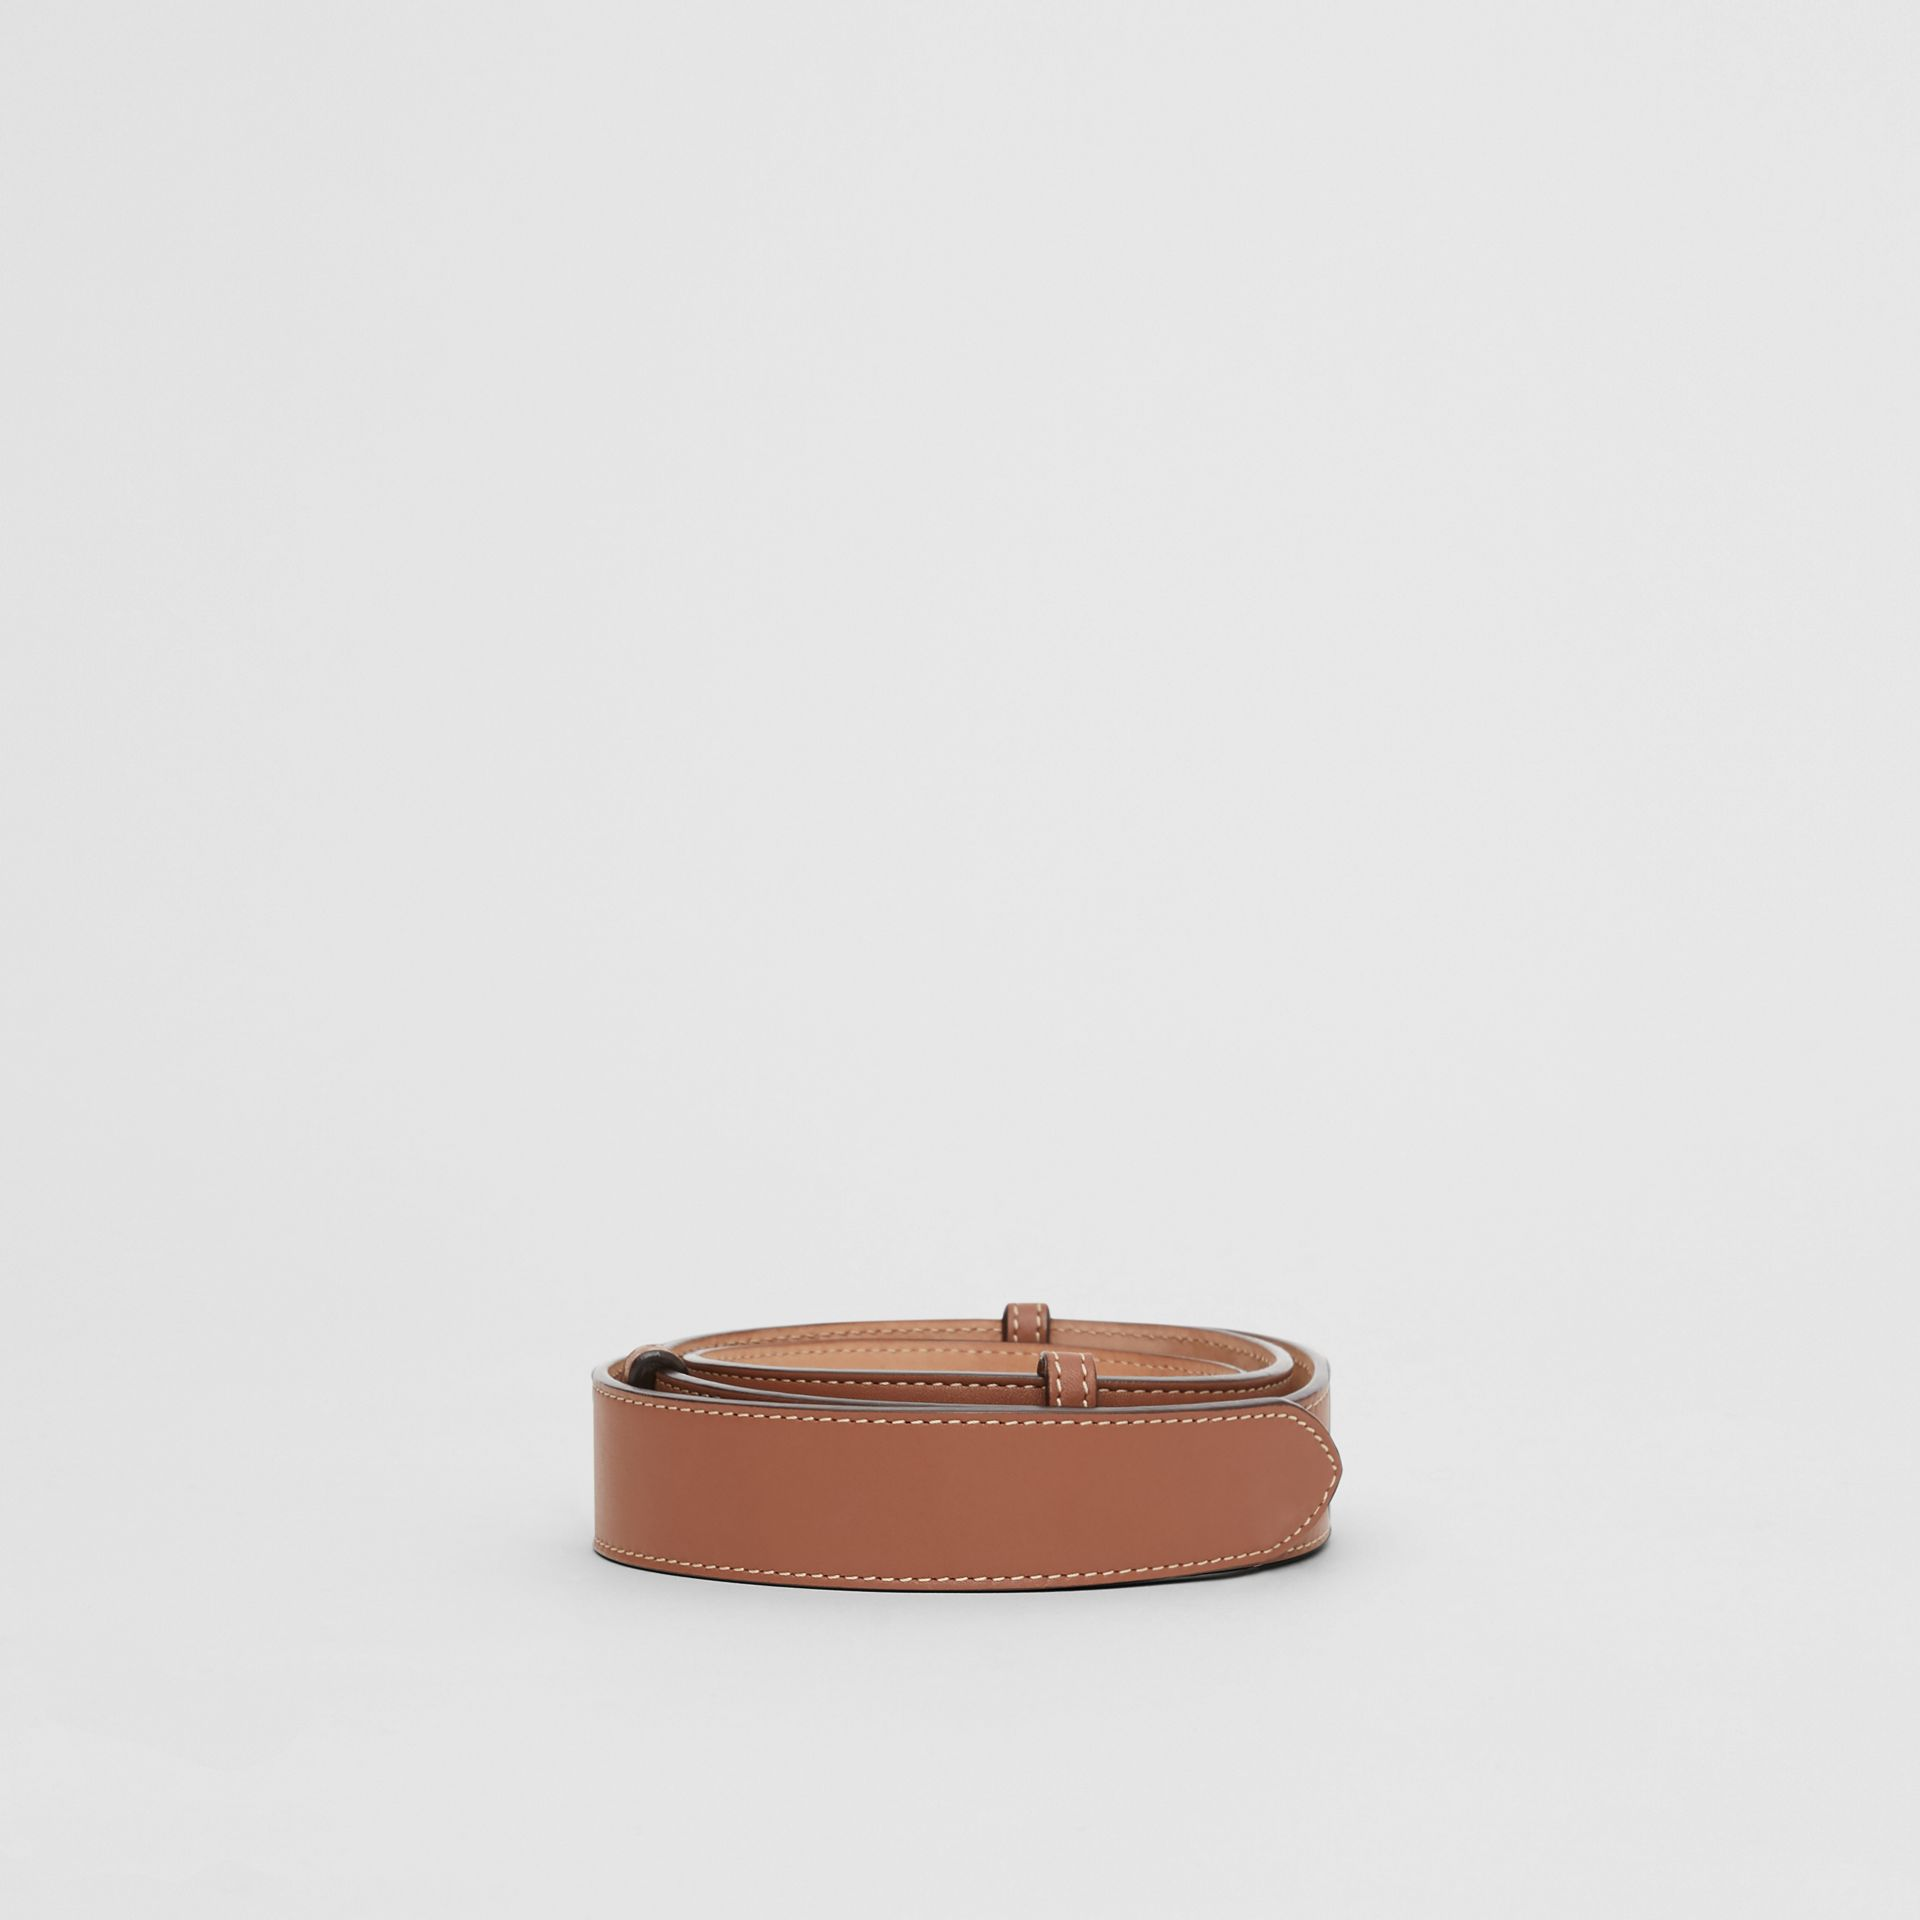 Triple Stud Leather Belt in Malt Brown - Women | Burberry - gallery image 3